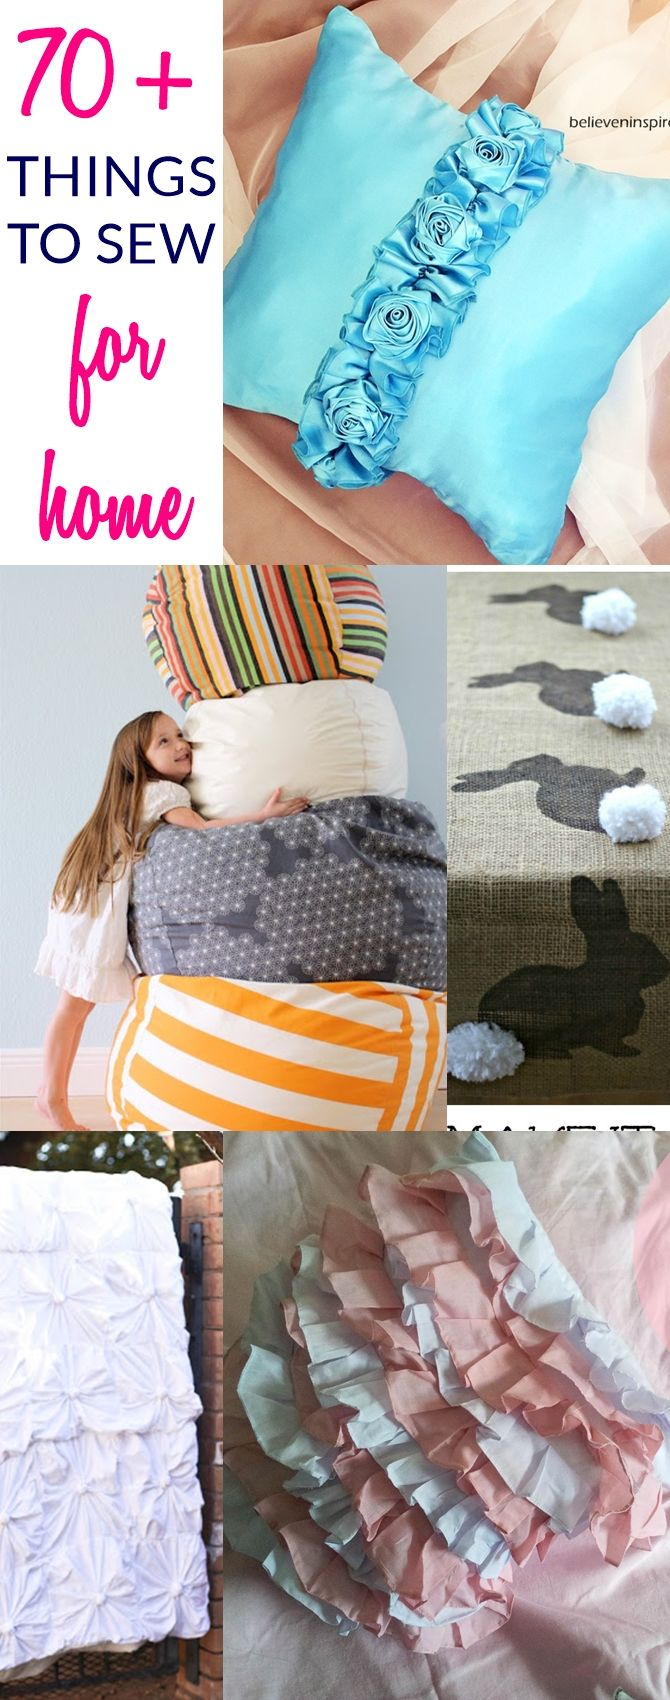 70 things to sew for home sewing ideas sewing projects sewing easy sewing patterns for beginners easy things to make at home sew for home jeuxipadfo Image collections